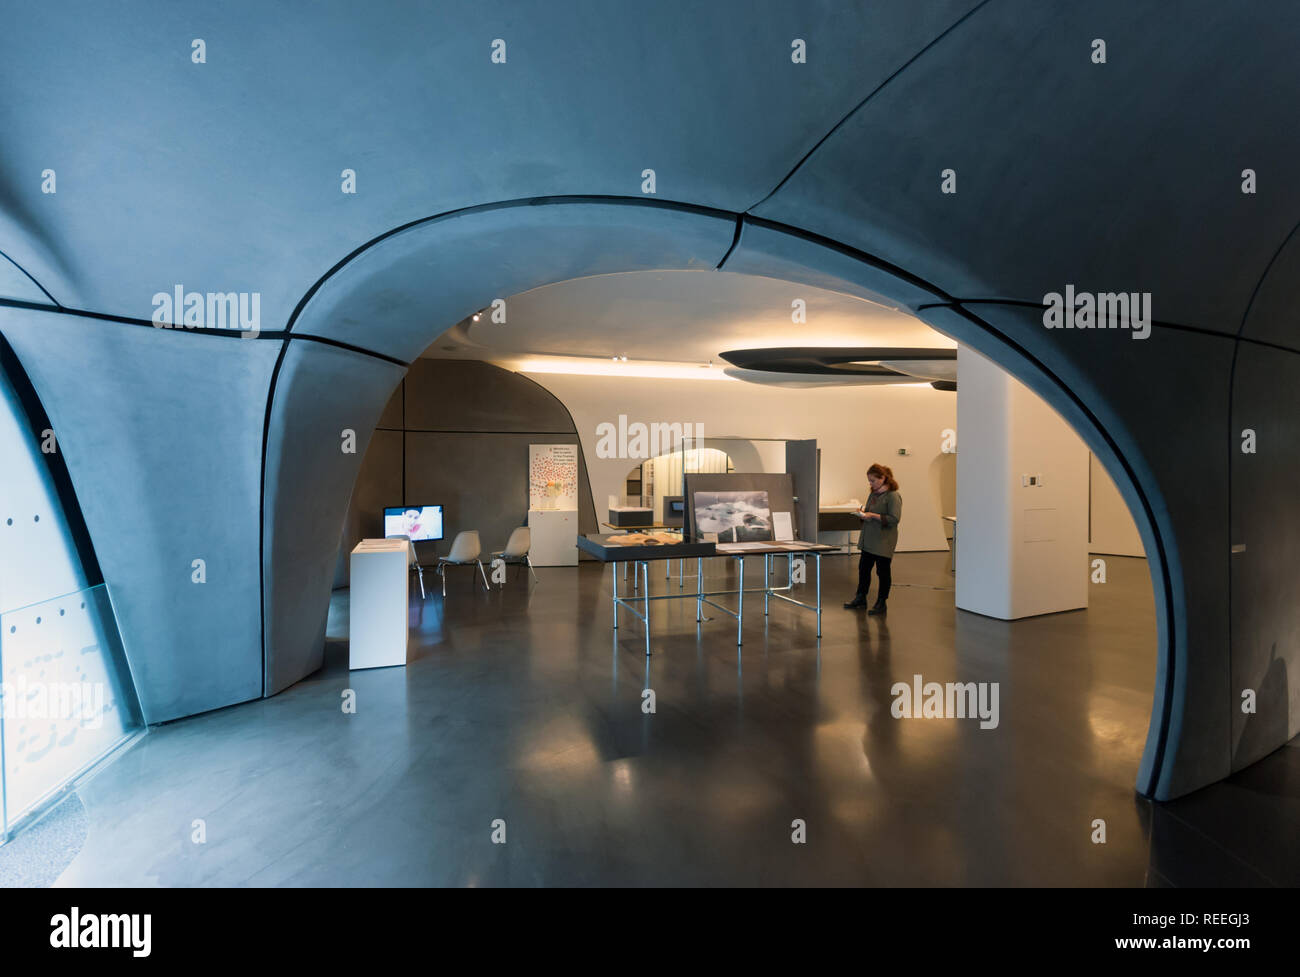 Roca London Gallery Futuristic Showroom In Chelsea Harbour Designed By Zaha Hadid Architects Interior Stock Photo Alamy